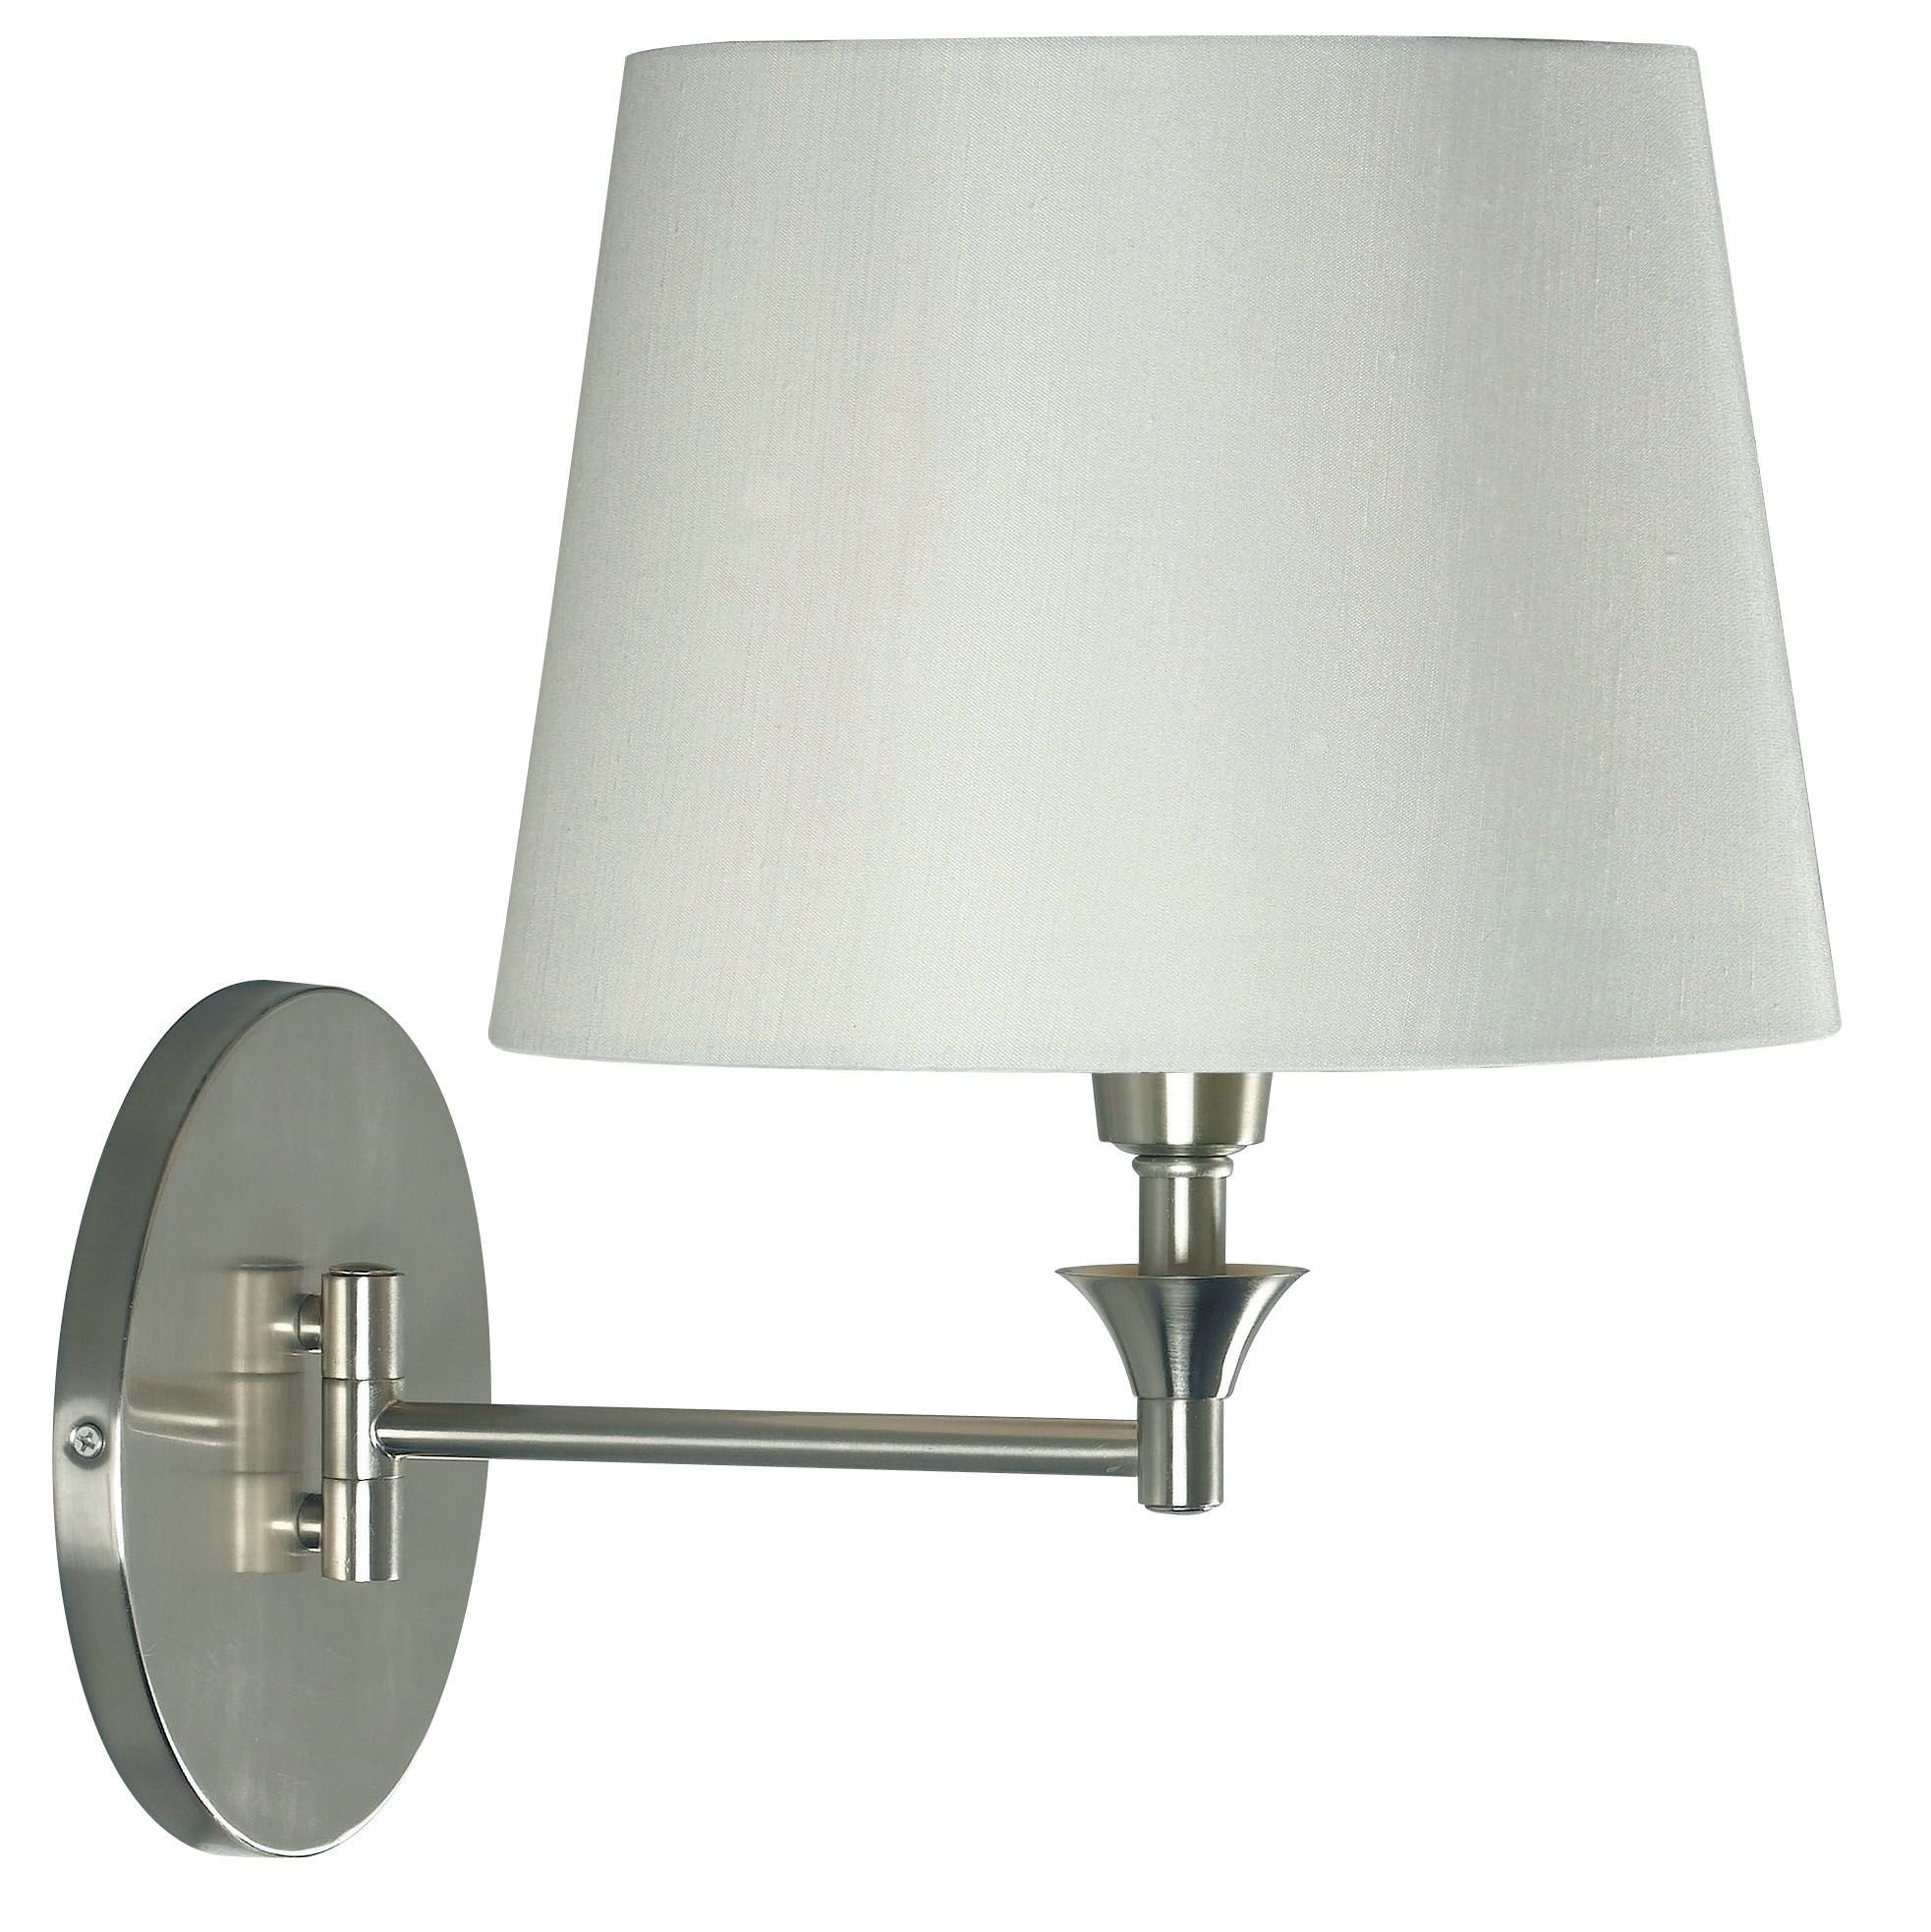 Kenroy Home 32180BS Martin Wall Swing Arm Lamp, 18'' x 13'' x 13'', Brushed Steel